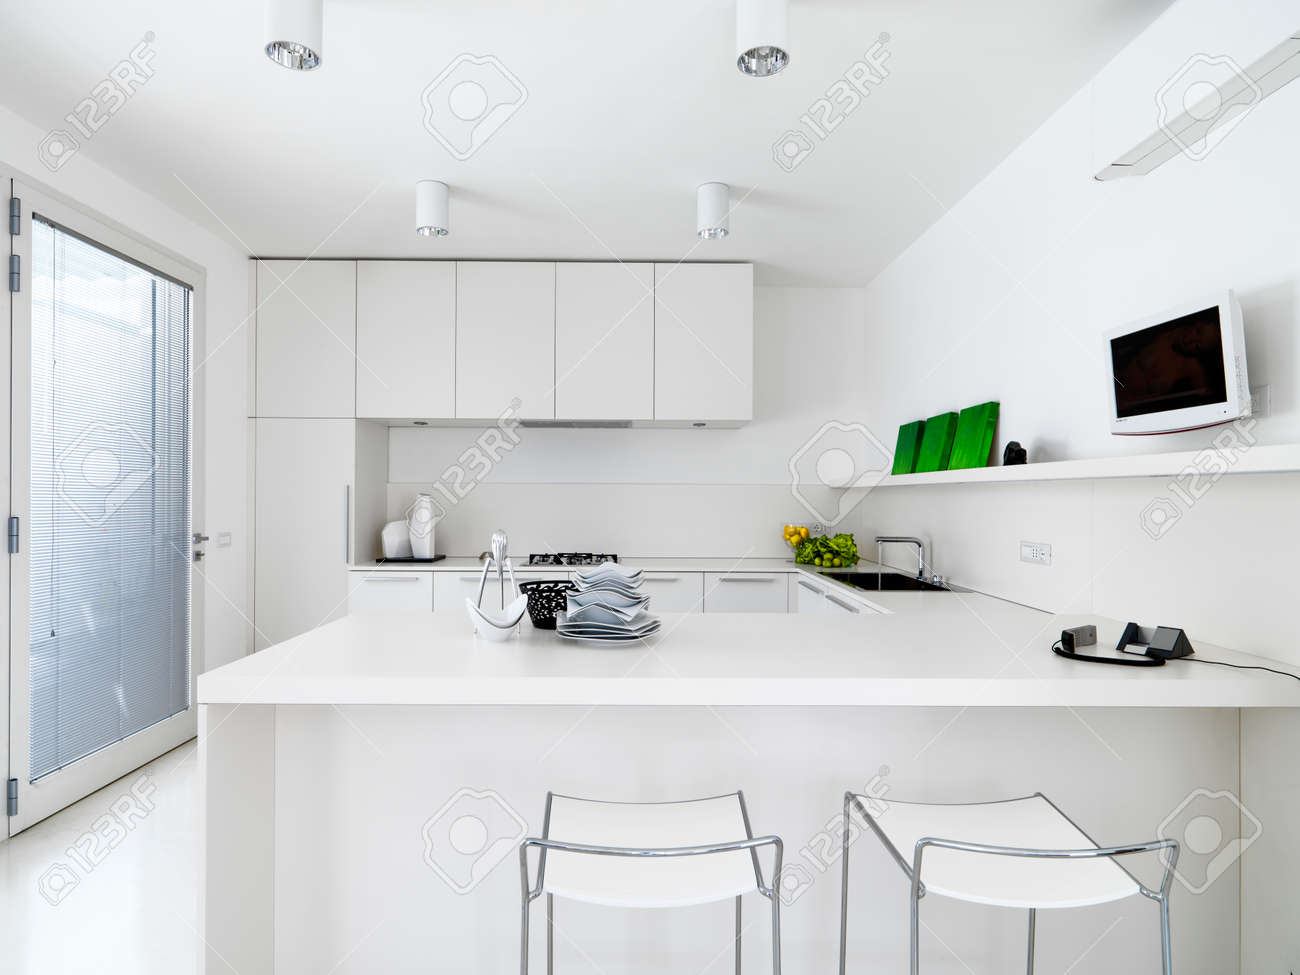 Interior View Of A White Modern Kitchen With Vegetables On The